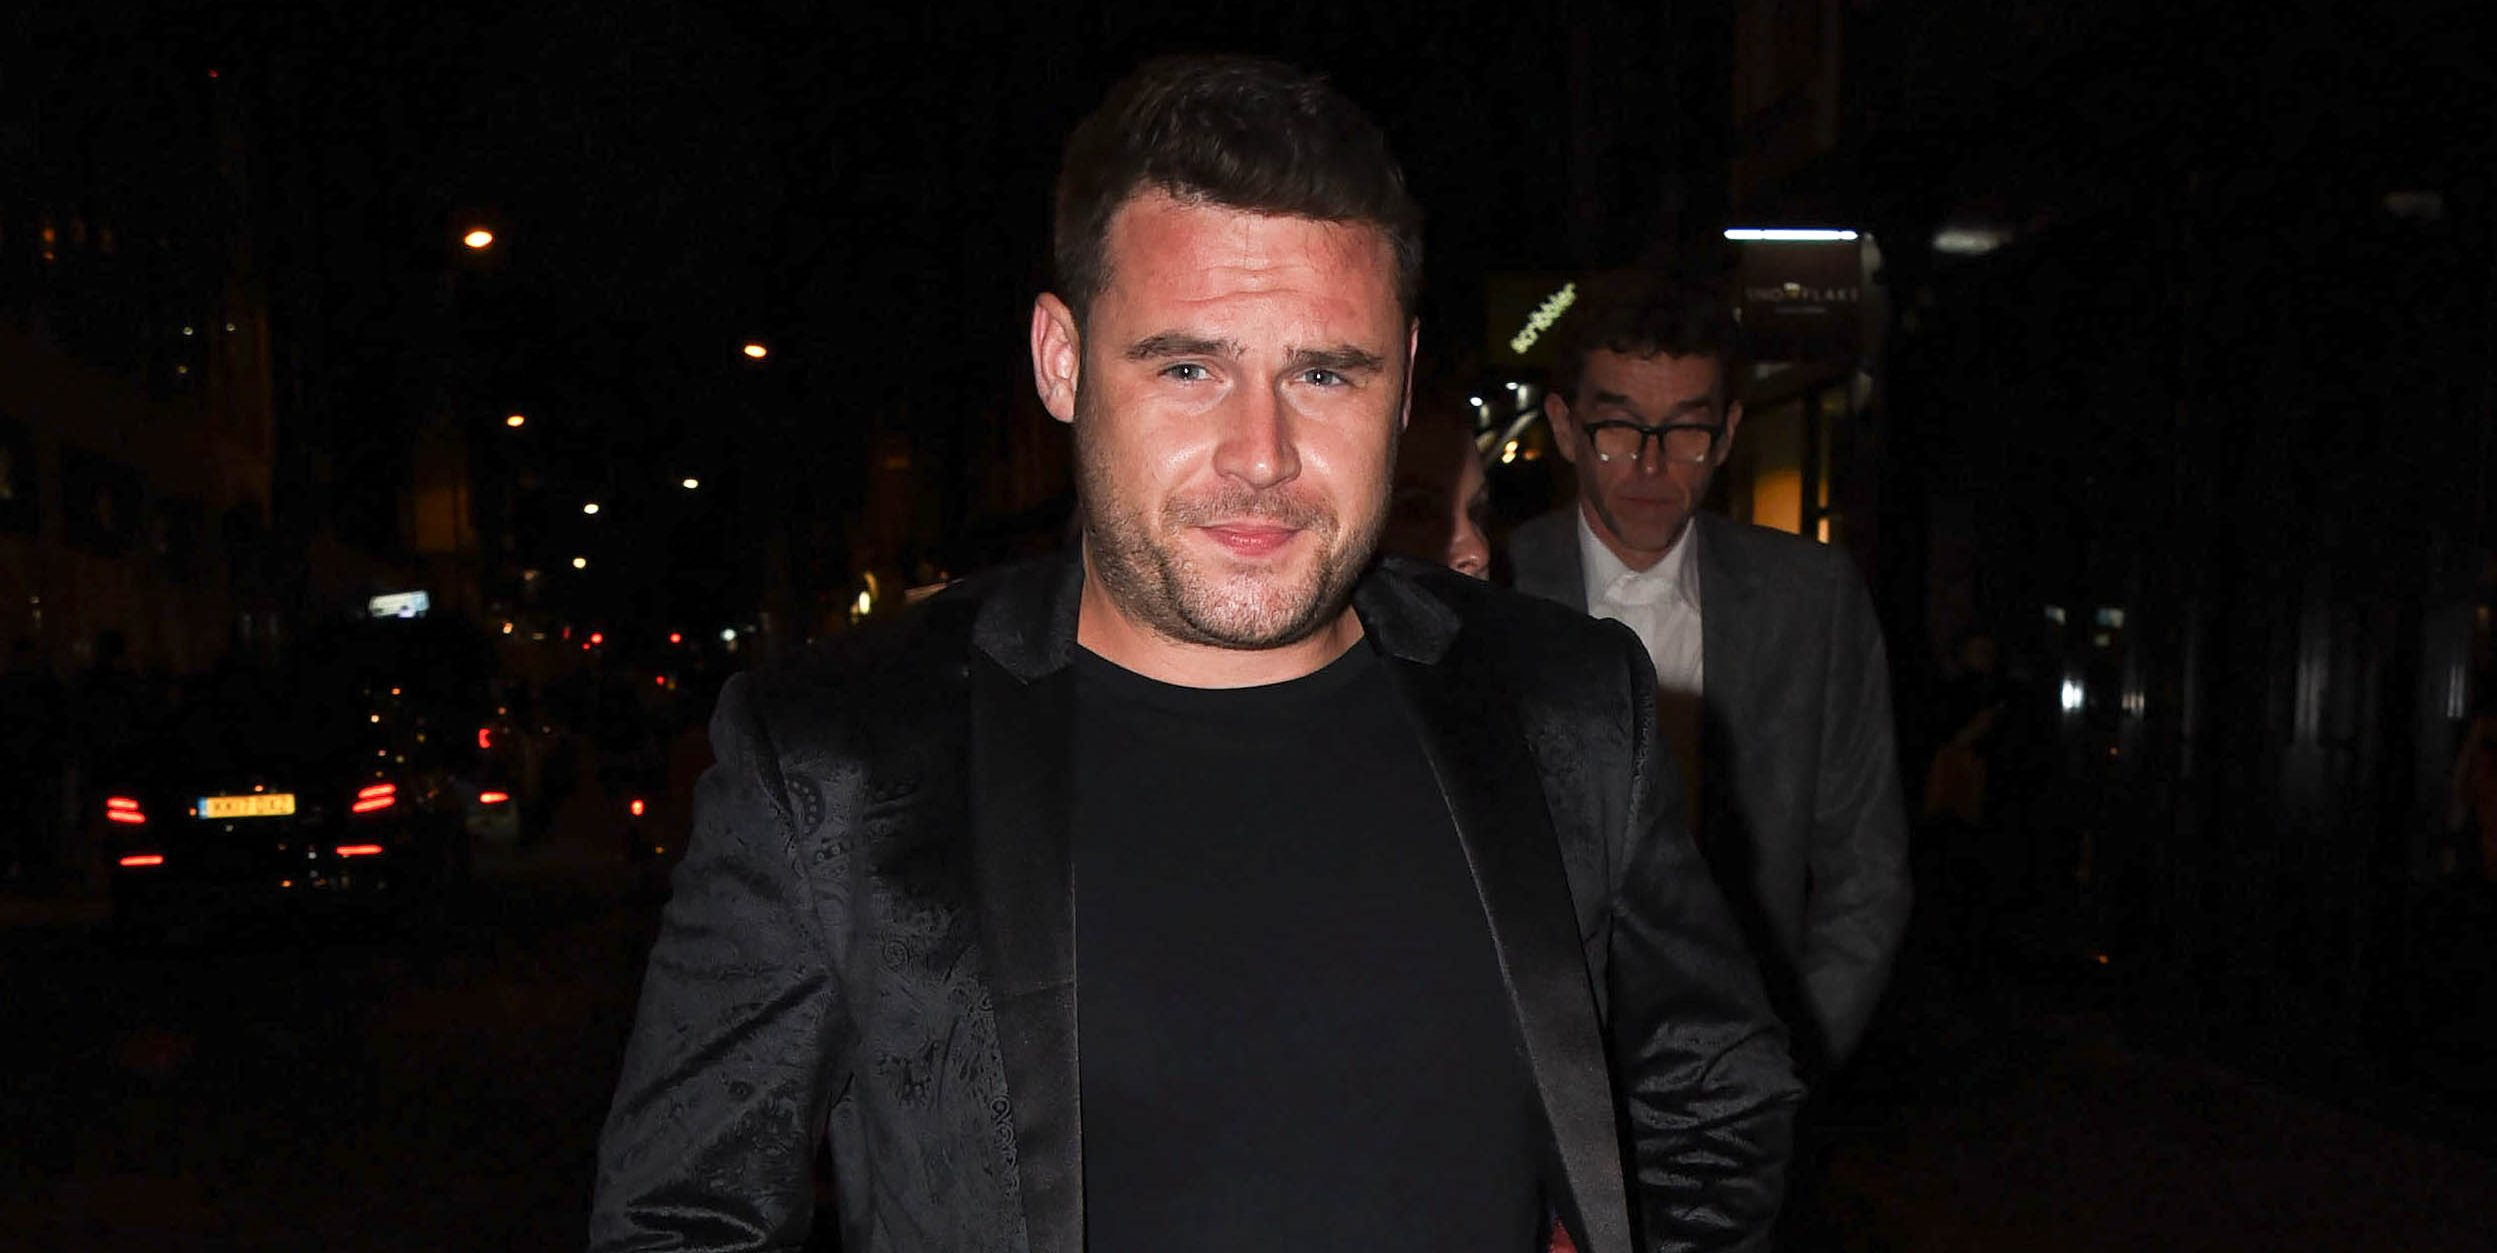 Emmerdale's Danny Miller shares adorable picture as he welcomes new baby to the family